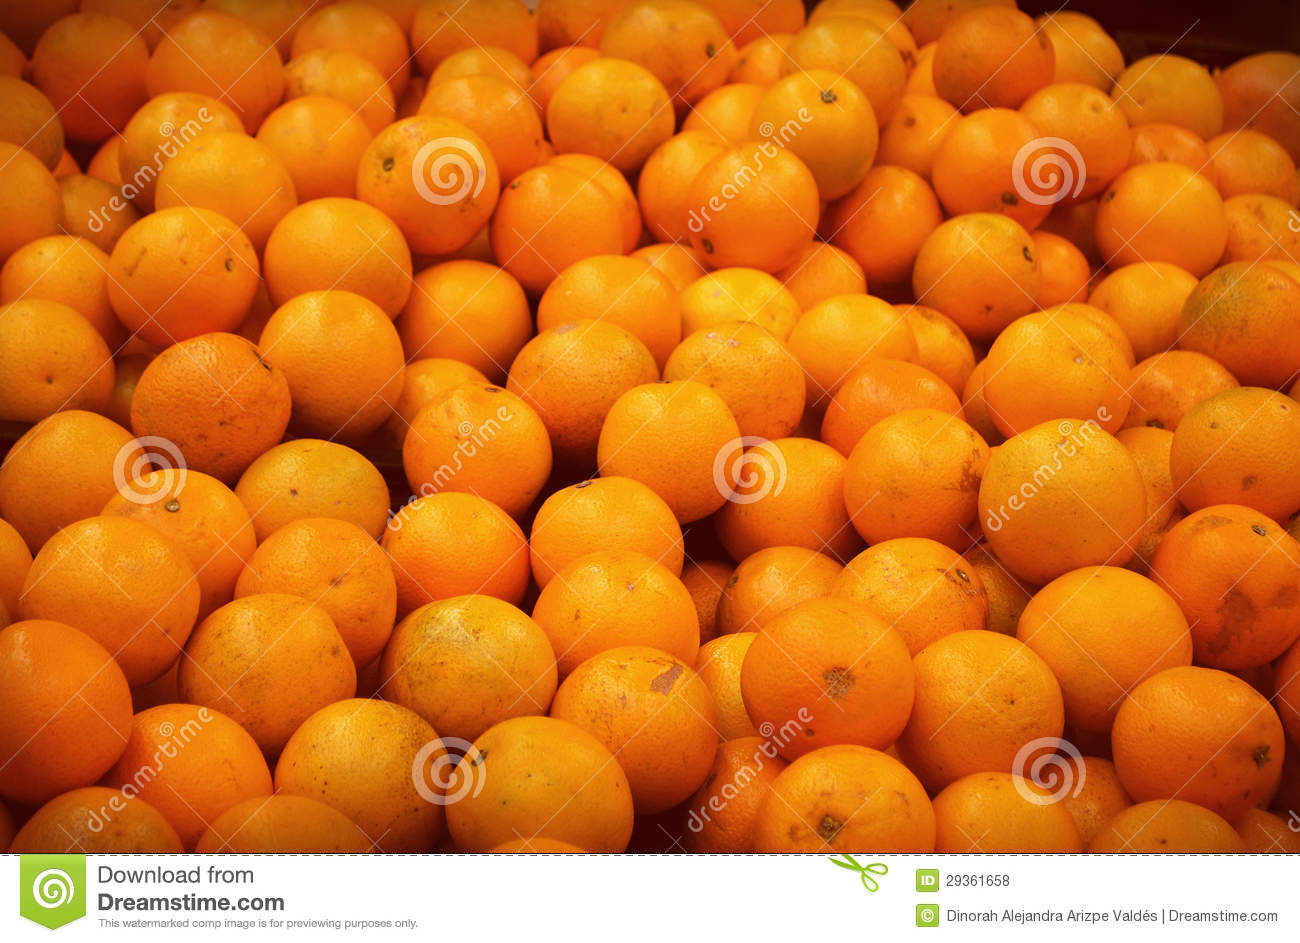 Many oranges